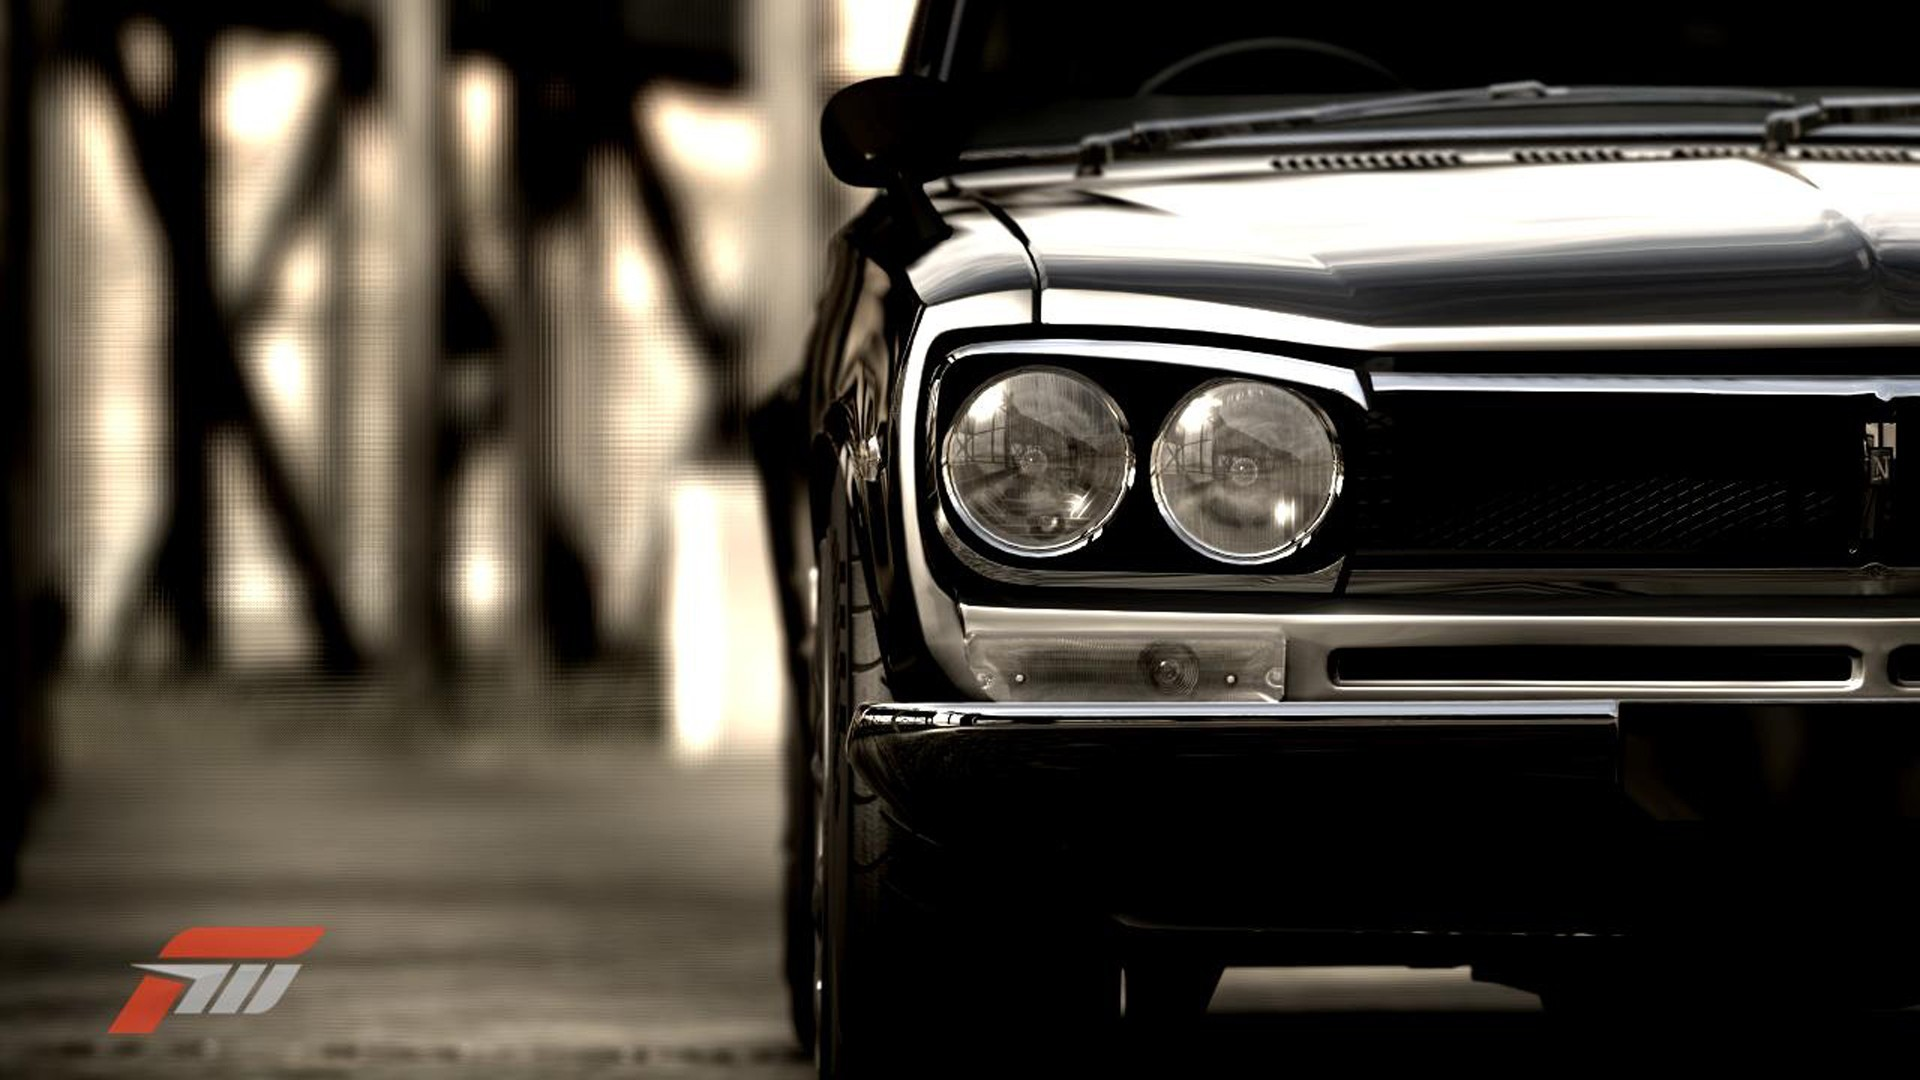 Car 5760x1080 Wallpaper Nissan Skyline 2000gt Nissan Jdm Hakosuka Wallpapers Hd